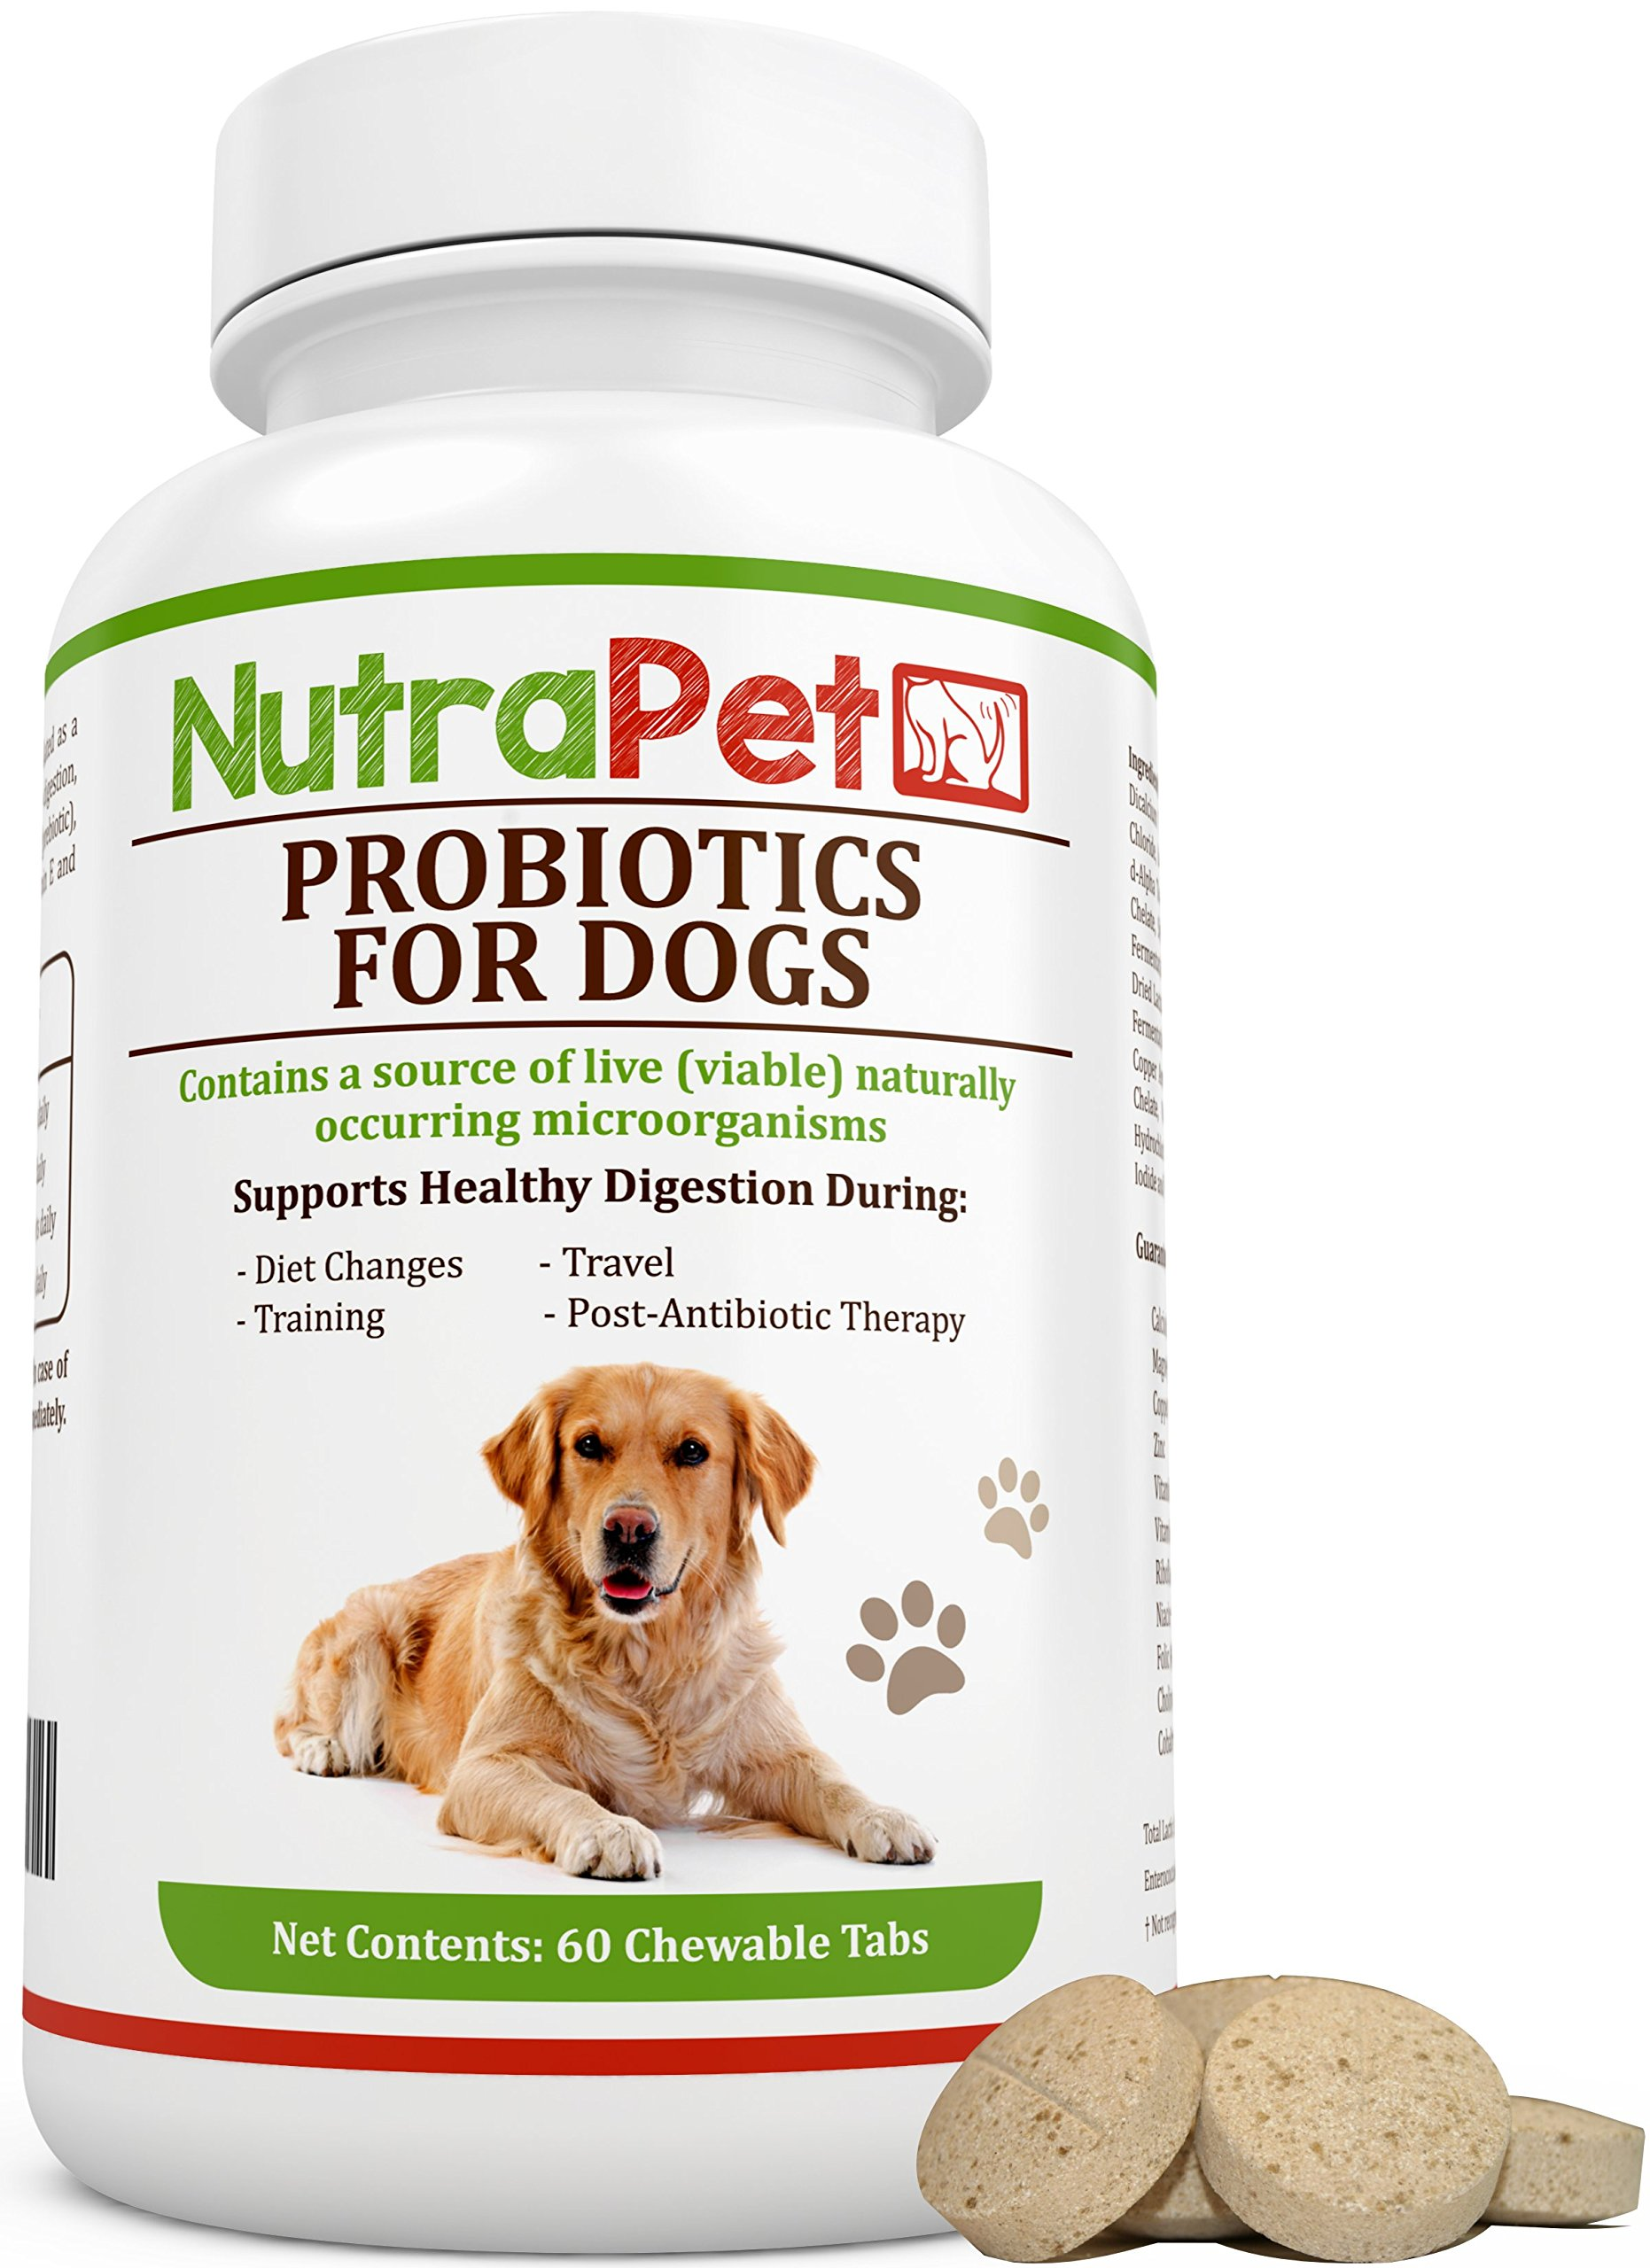 NutraPet Probiotics for Dogs Chewable, Best for Smelly Gas and Diarrhea Relief Plus Added Prebiotic and Vitamins Only, Controls Stomach Upset, Itching, Hot Spots, 120 Tabs by NutraPet